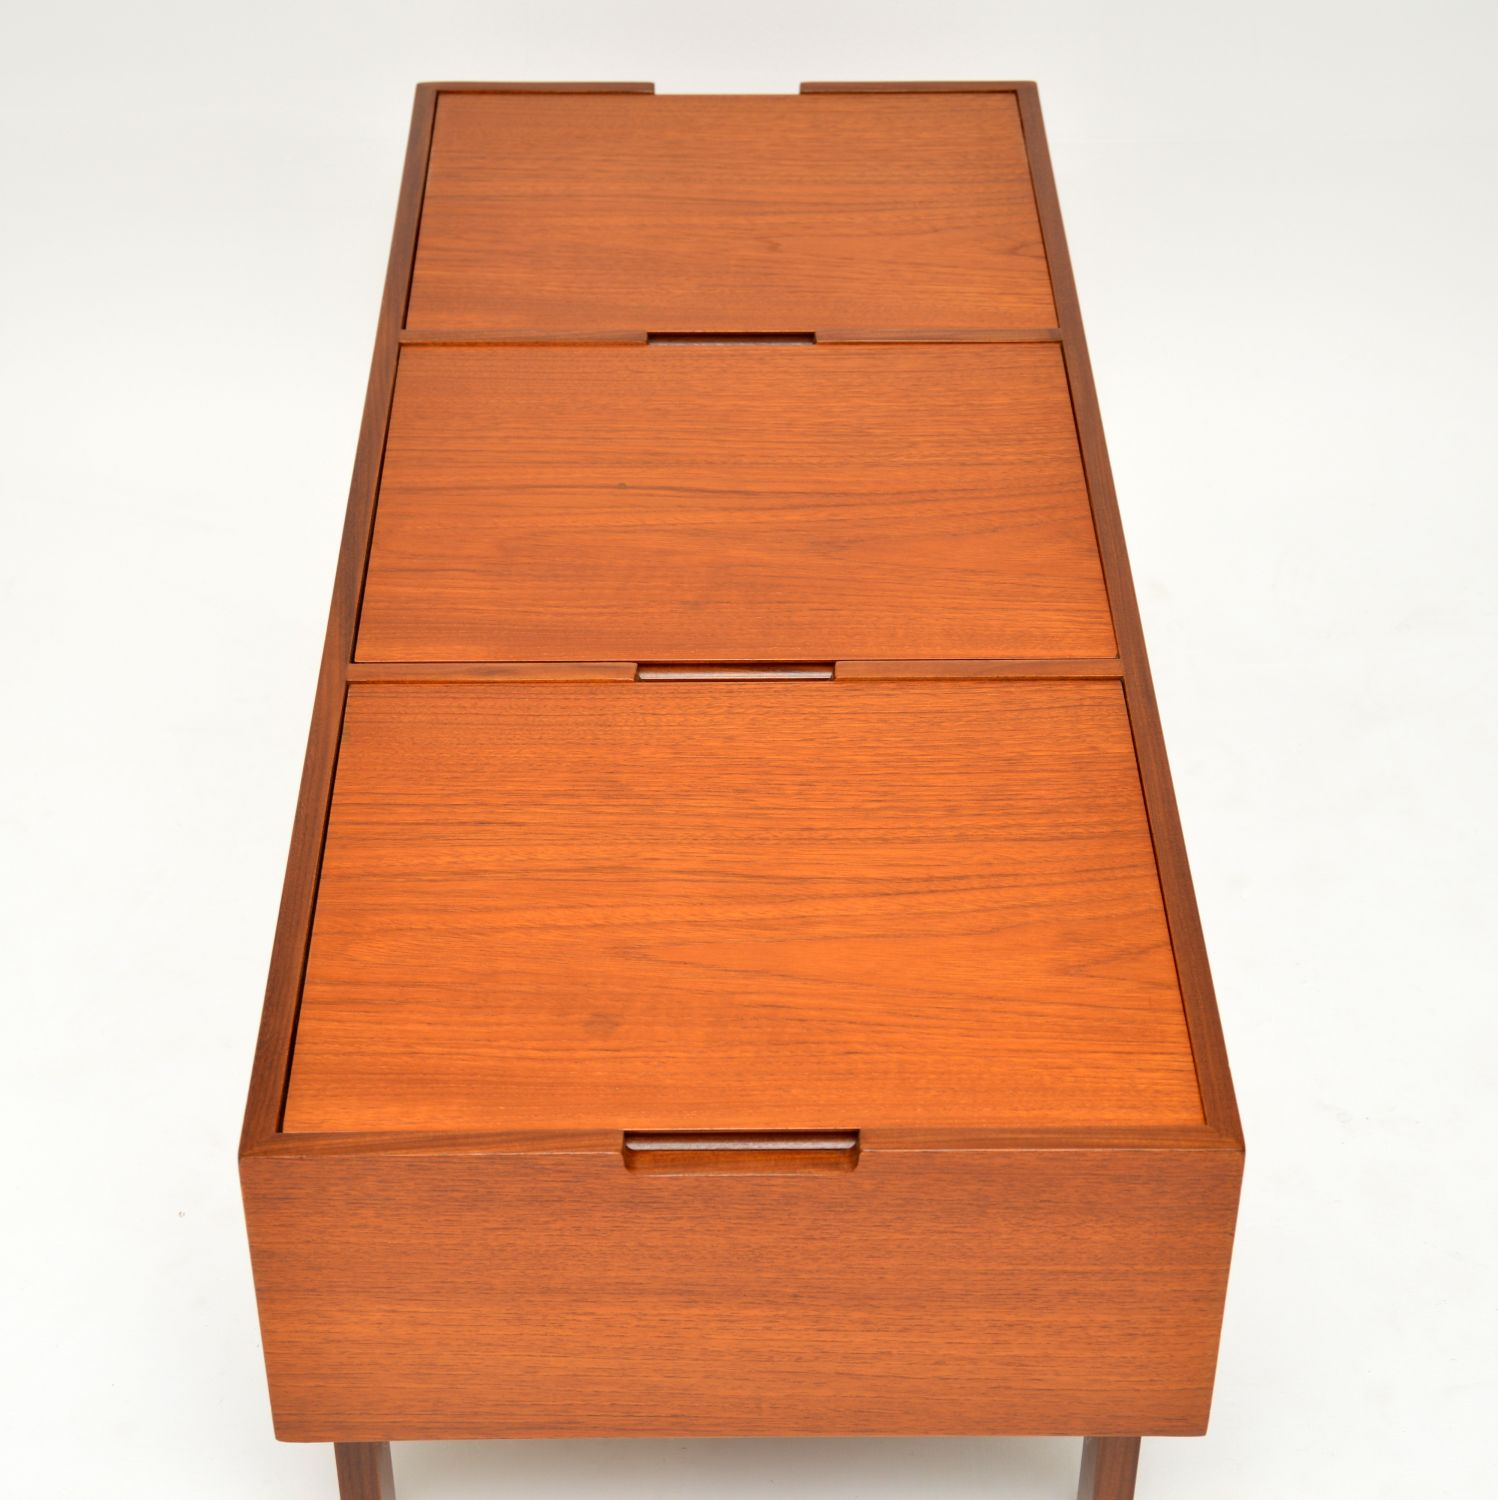 1960's Teak Vintage Coffee Table / Storage Box ...